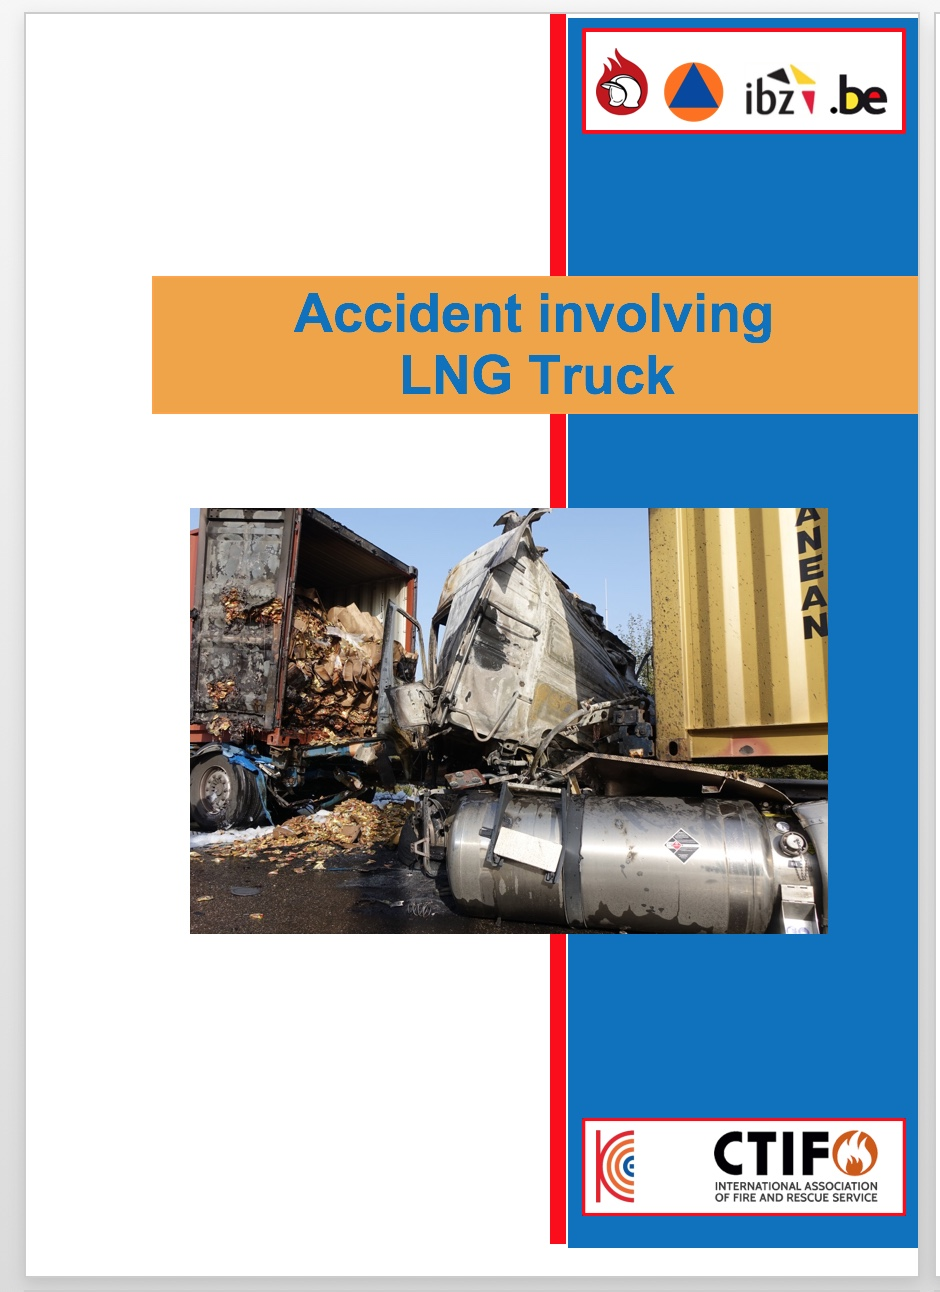 Lessons Learned From An Accident Involving Lng Truck Ctif 4 Guys Fire Wiring Diagram This Web Version Of The Article Has Been Abbreviated And Edited To Fit Format